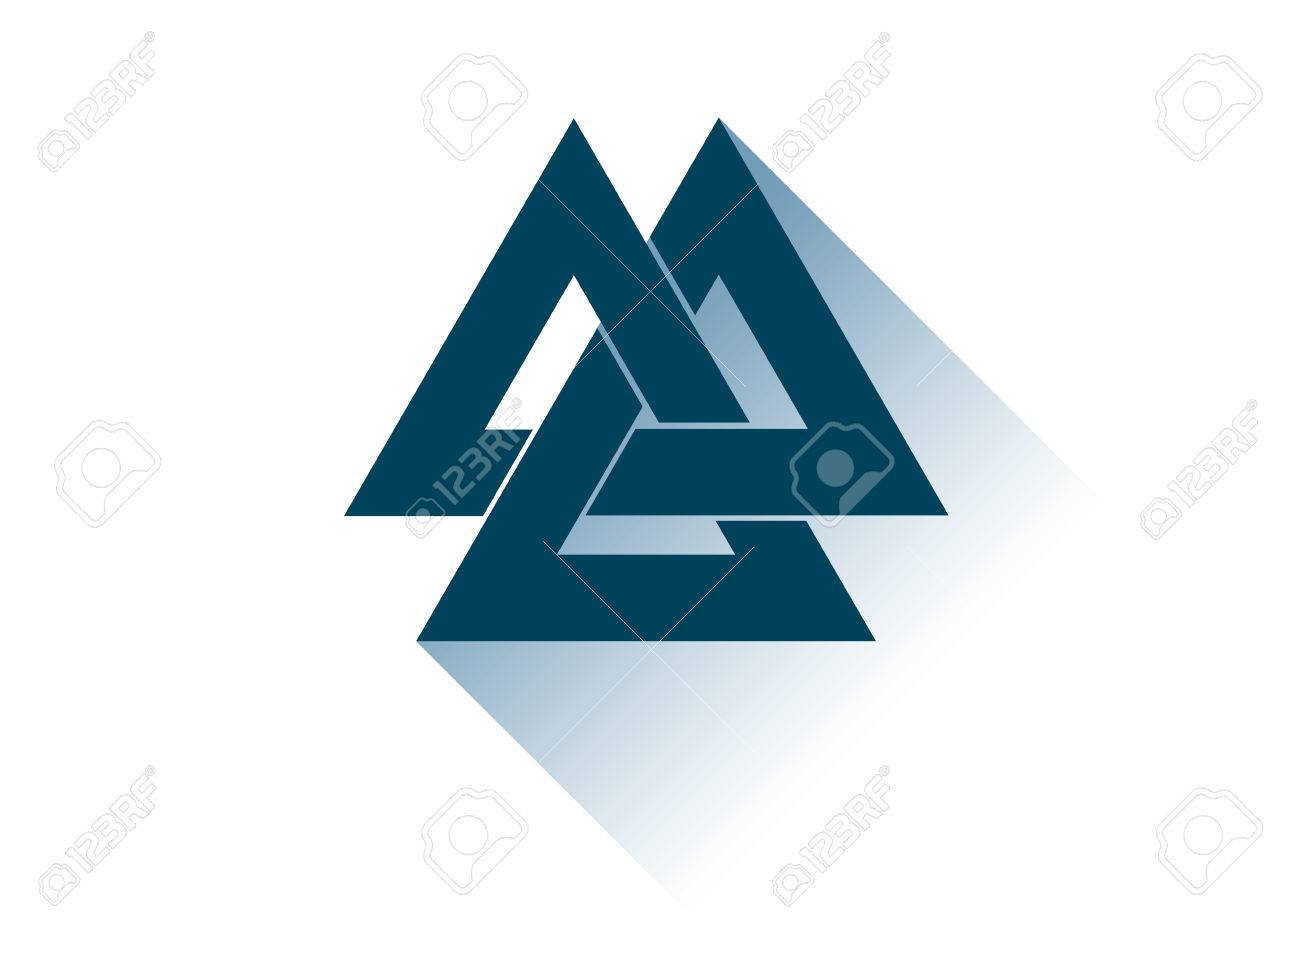 Triangle is a symbol of image collections symbol and sign ideas valknut is a symbol of the worlds end of the tree yggdrasil valknut is a symbol buycottarizona